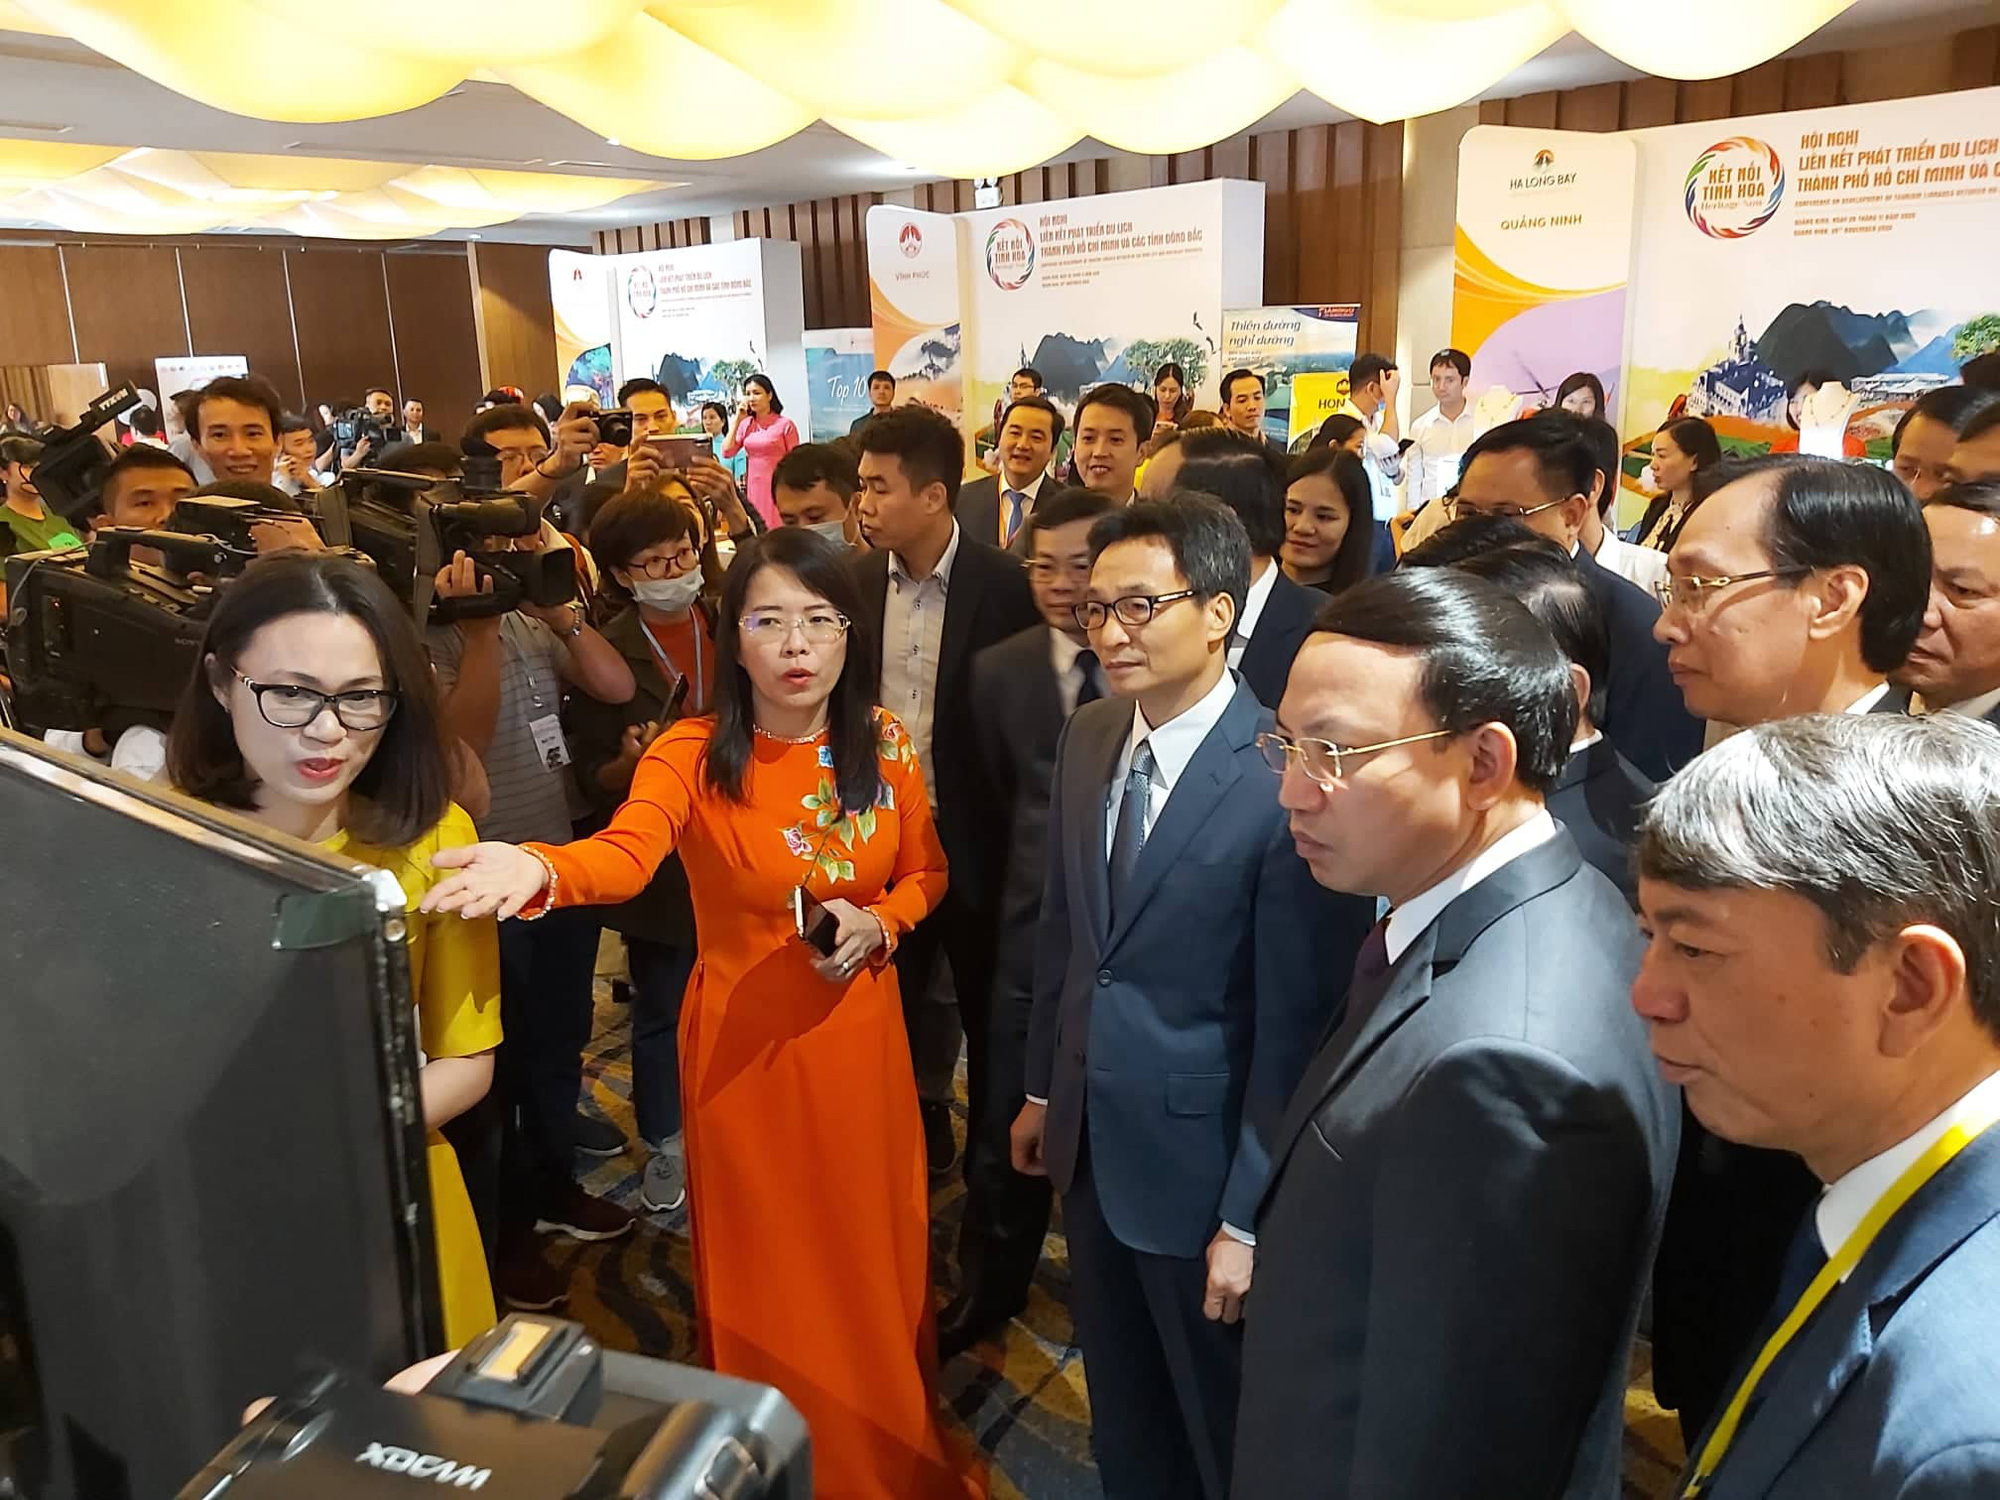 Ms. Nguyen Thi Anh Hoa, Director of the Ho Chi Minh City Department of Tourism, introduced the digital map of Ho Chi Minh City tourism to Deputy Prime Minister Vu Duc Dam - Photo: N. BINH